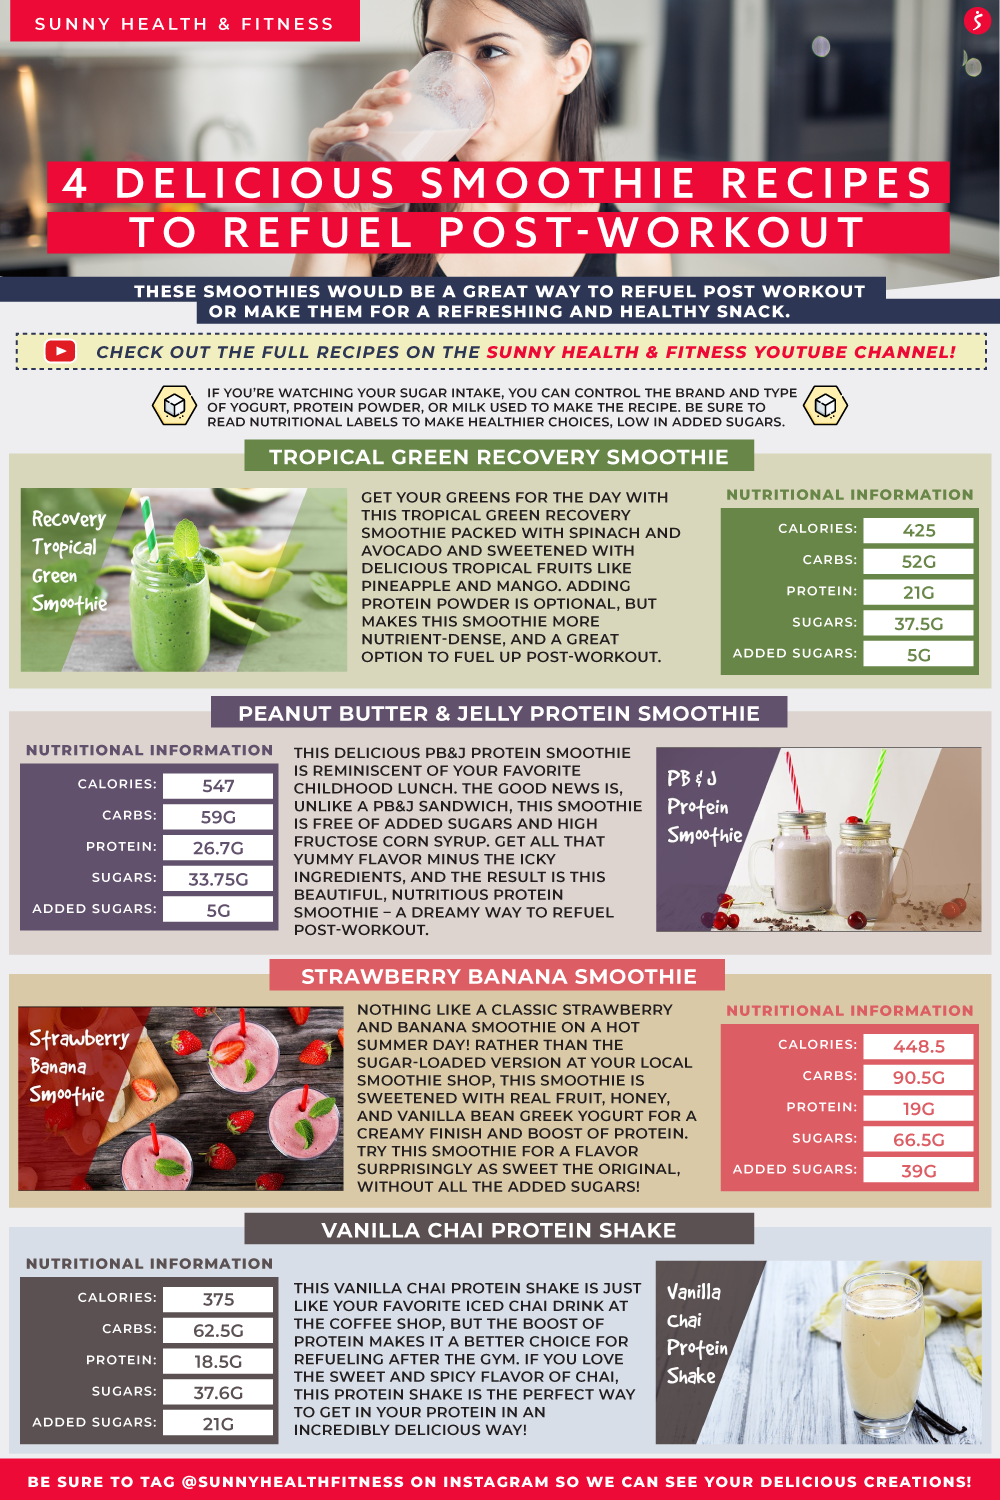 4 Delicious Smoothie Recipes to Refuel Post-Workout Infographic